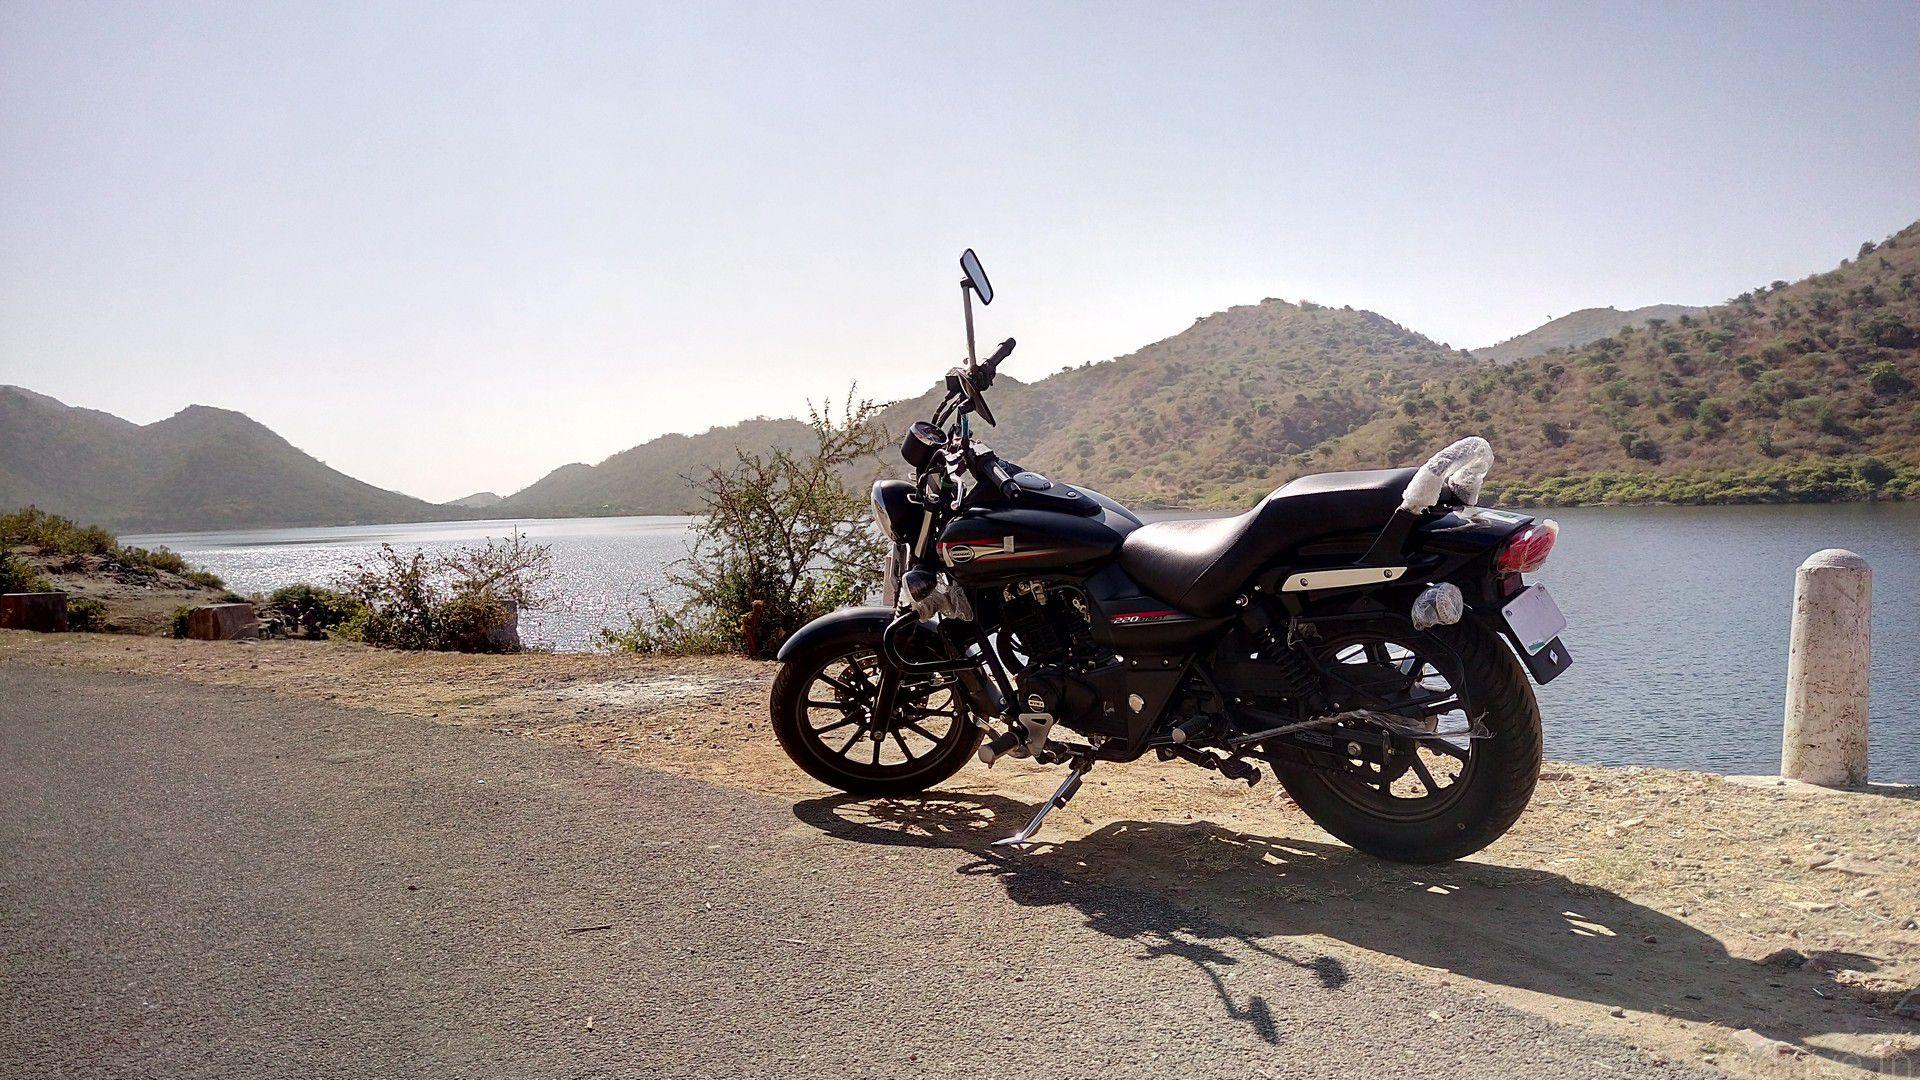 Bajaj Avenger Street 160 Price, Mileage, Specifications, Colors, Top Speed and Service Schedule